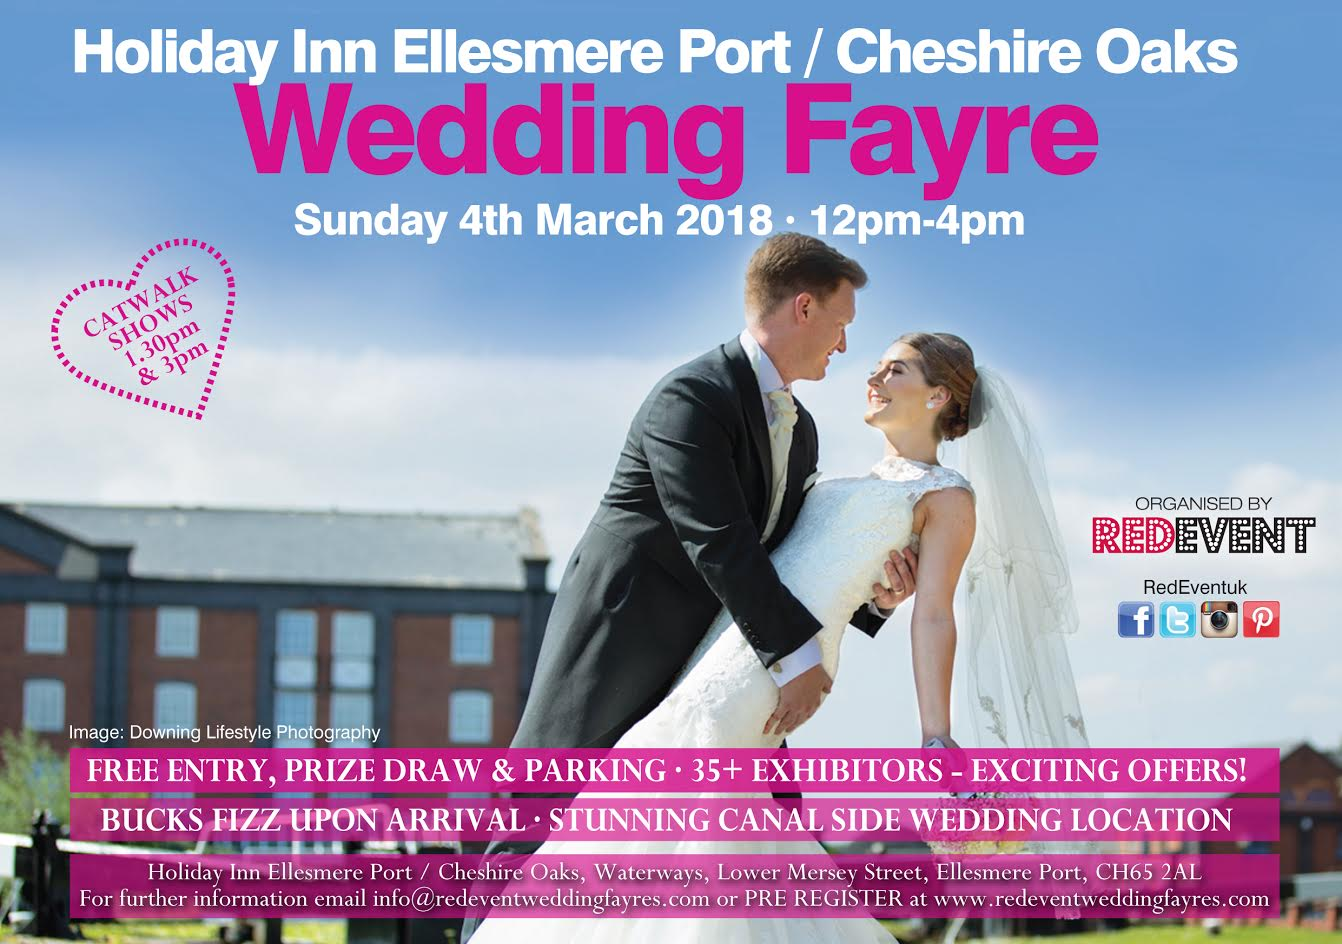 Holiday Inn Ellesmere Port flyer www.redeventweddingfayres.com